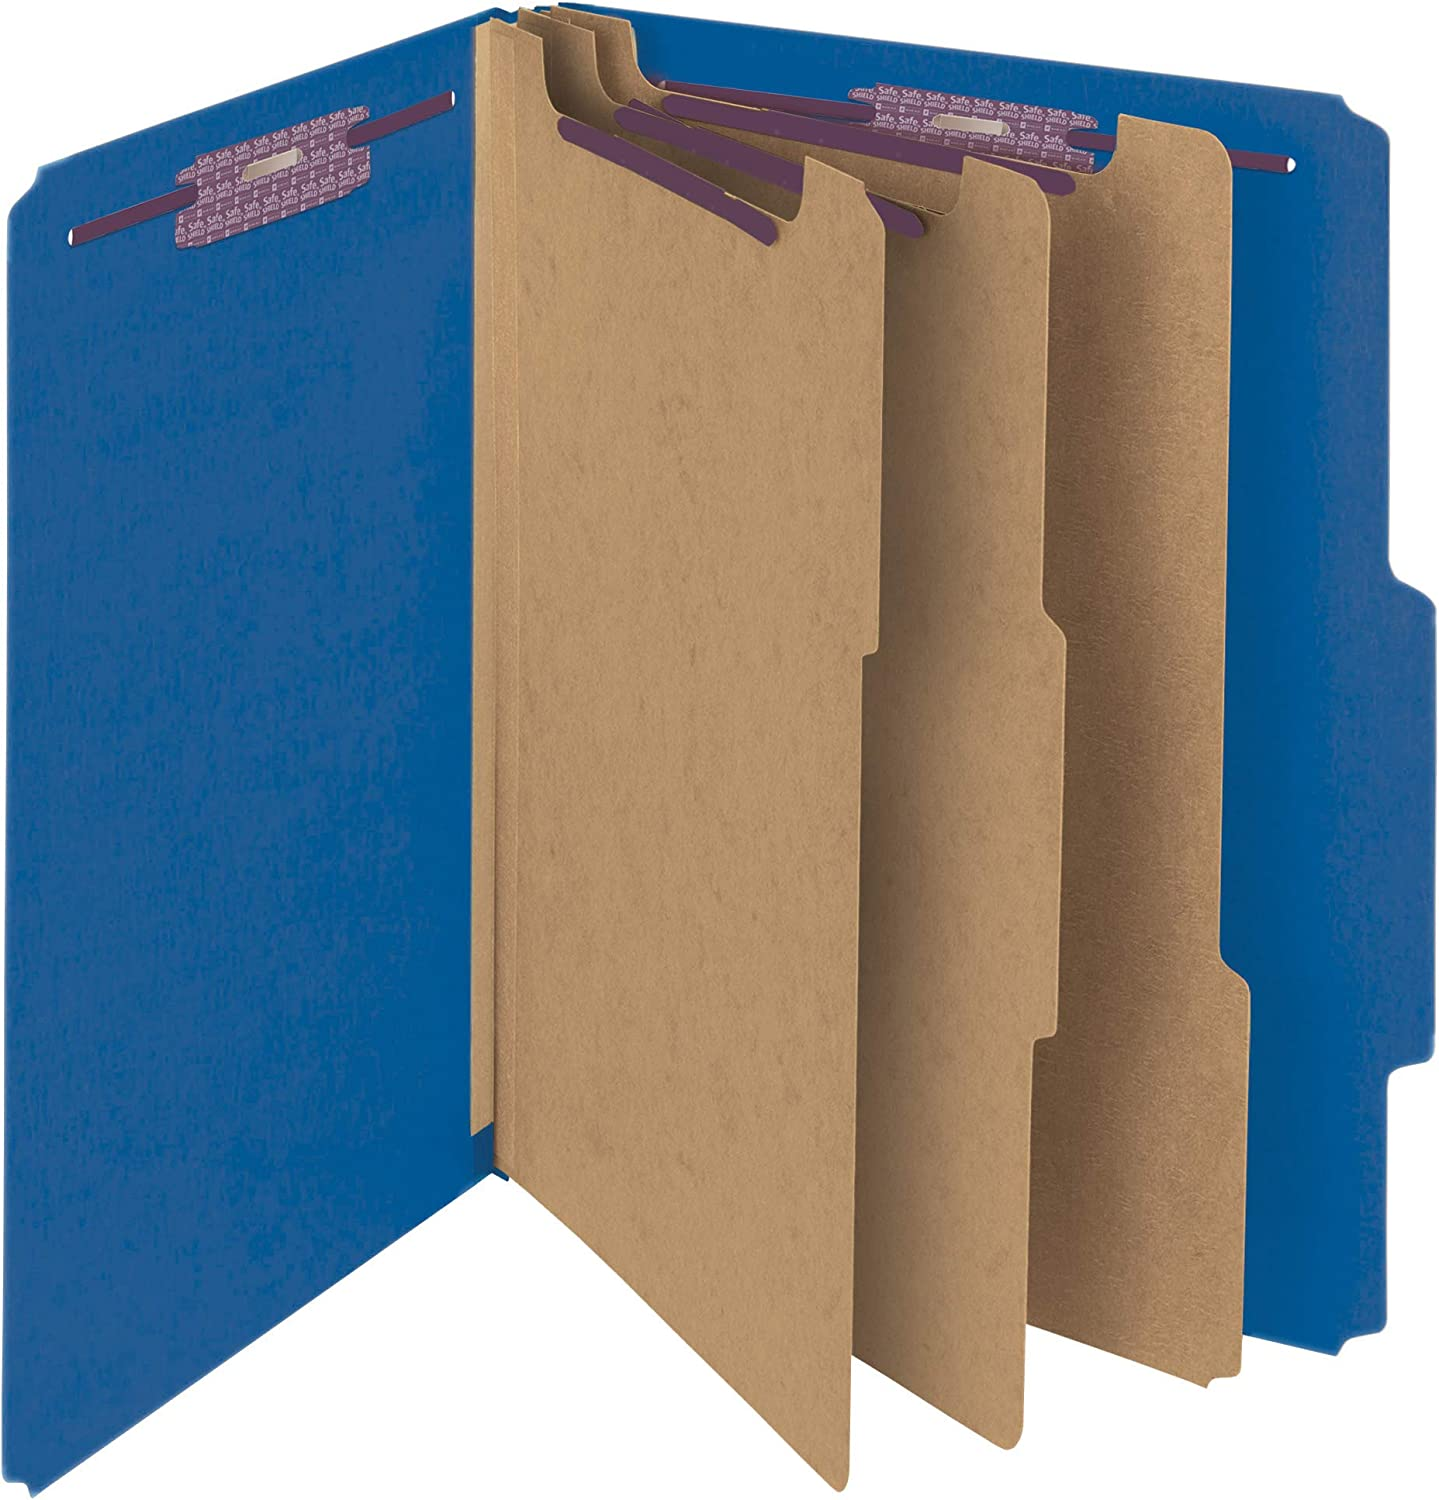 Amazon Com Smead Pressboard Classification File Folder With Safeshield Fasteners 3 Dividers 3 Expansion Letter Size Dark Blue 10 Per Box 14096 Top Tab Classification Folders Office Products